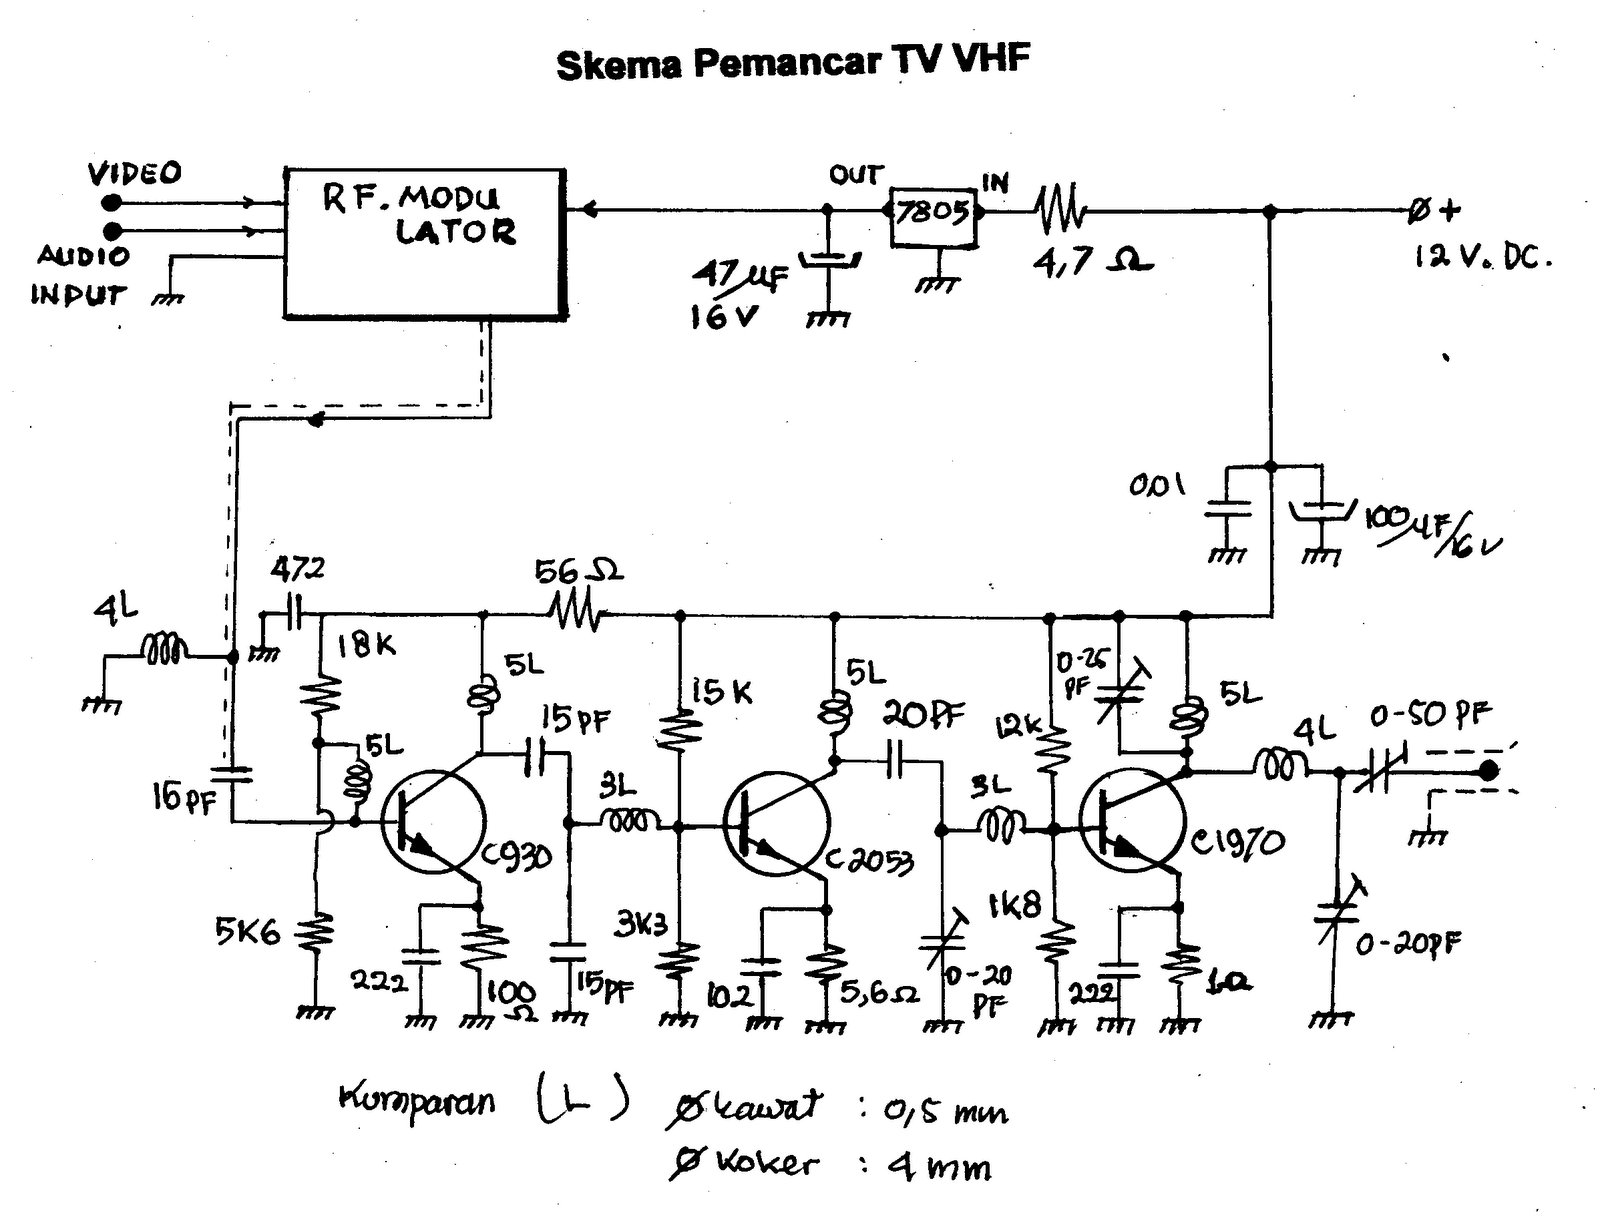 FM RF amplifier for VHF TV? Uhf Transmitter Schematic on wifi transmitter schematic, vlf transmitter schematic, rf transmitter schematic, cellular transmitter schematic, am transmitter schematic, bluetooth transmitter schematic, television transmitter schematic, hf transmitter schematic, shortwave transmitter schematic, 900 mhz transmitter schematic, elf transmitter schematic, tv transmitter schematic, cw transmitter schematic, radio transmitter schematic, fm transmitter schematic,